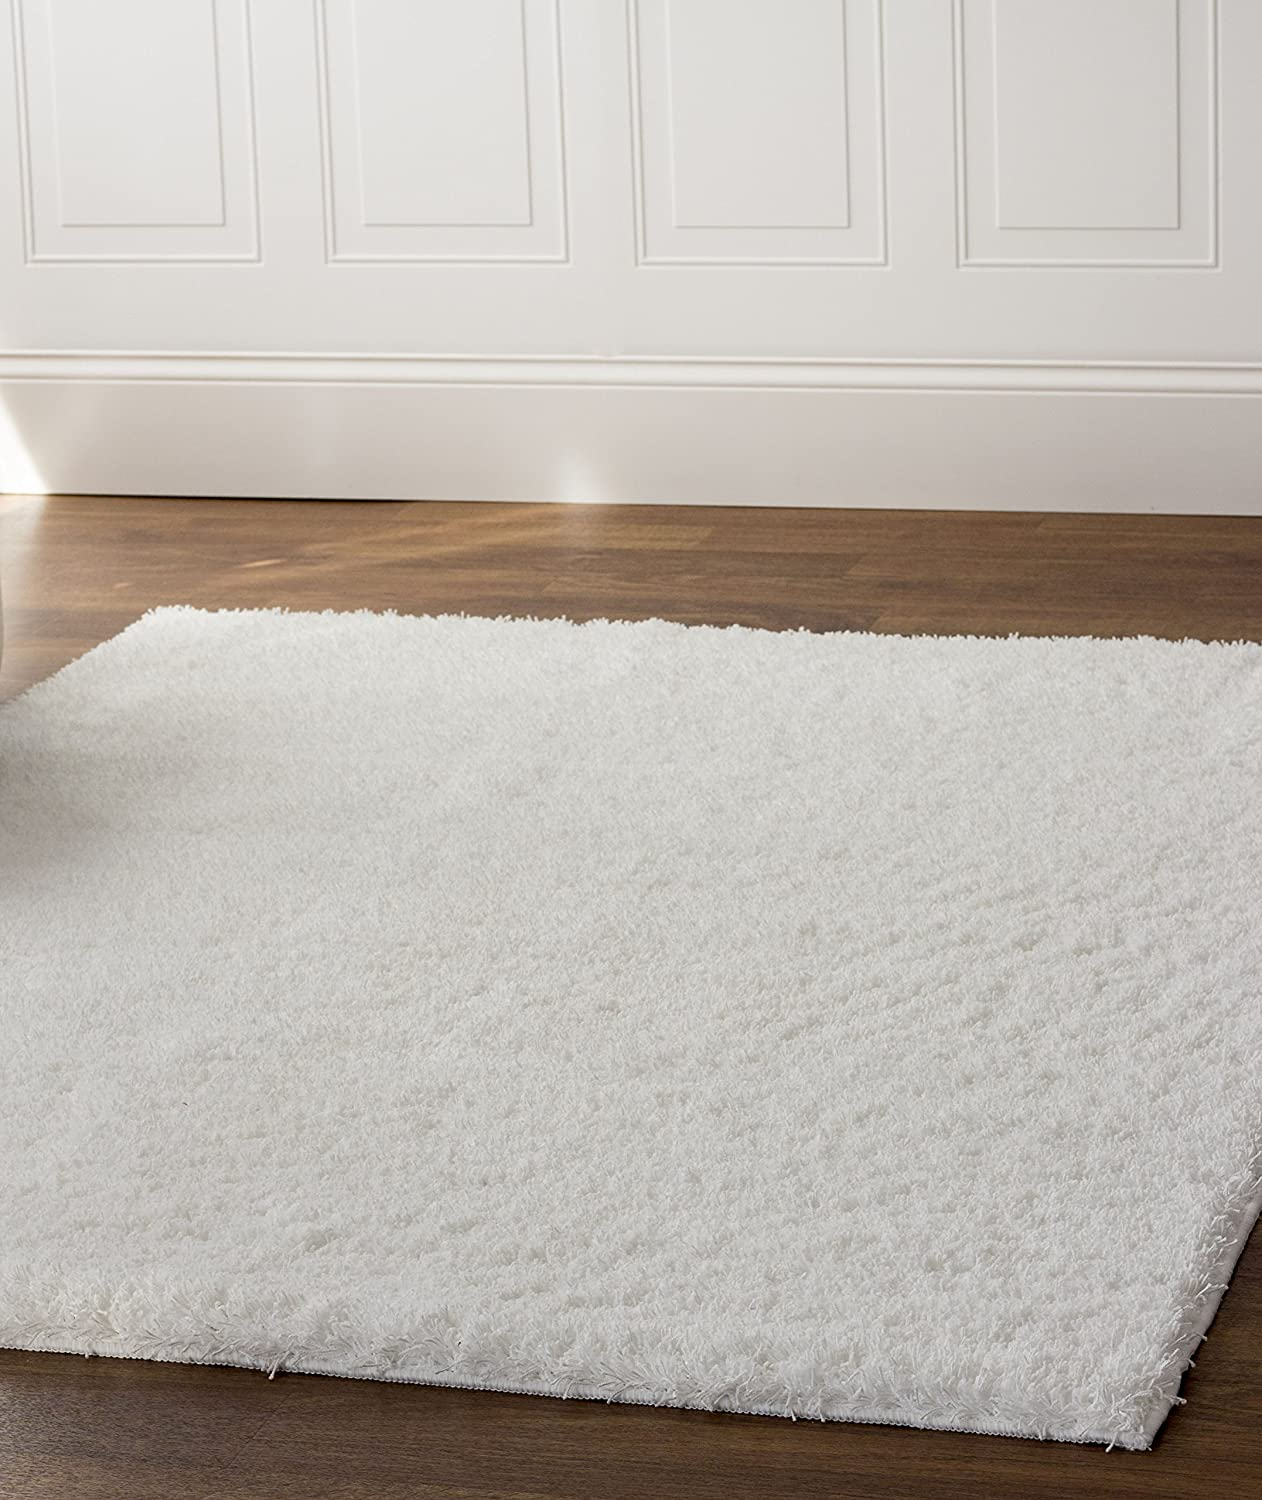 adorable white rugs astonishing wondrous rug awesome deep size carpet full area of fluffy plush thick soft shag flooring